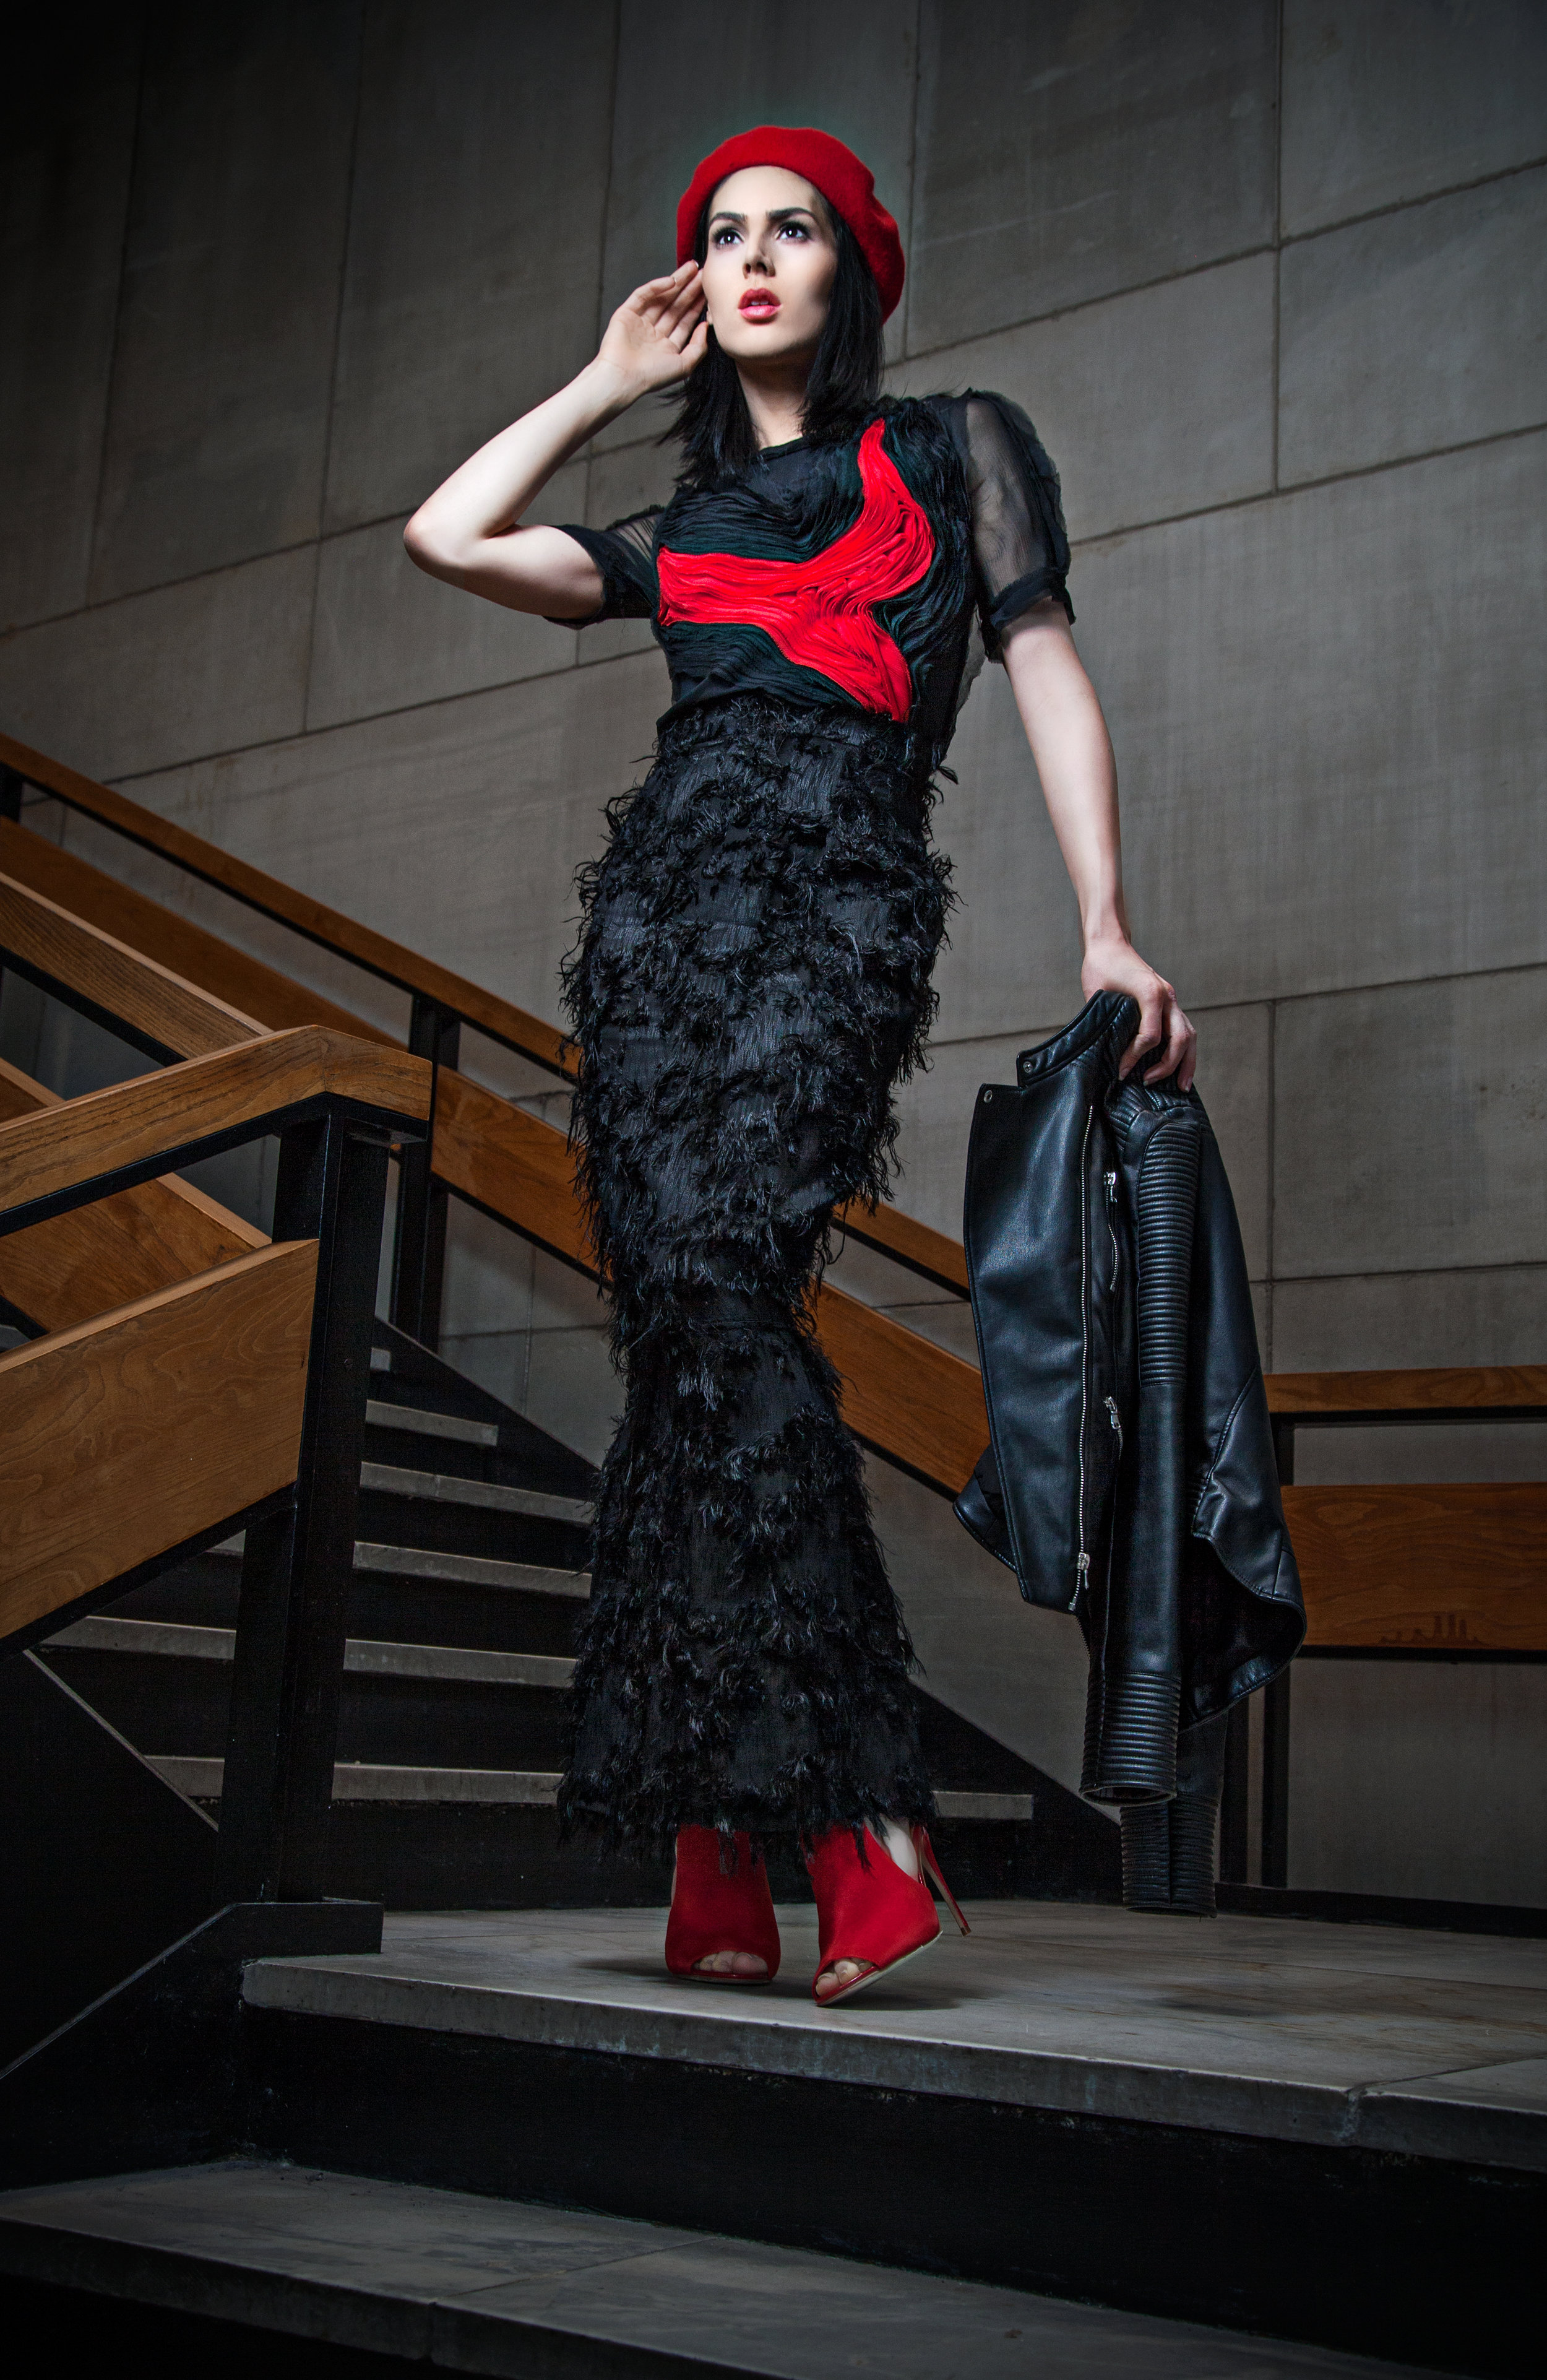 Abstract Heart Blouse + Black Feathery Pillar Skirt     by  Kate Stoltz  @katestoltz     Red beret and leather jacket courtesy of Style Team Member Lee-Ann Laville; Red shoes by Steve Madden